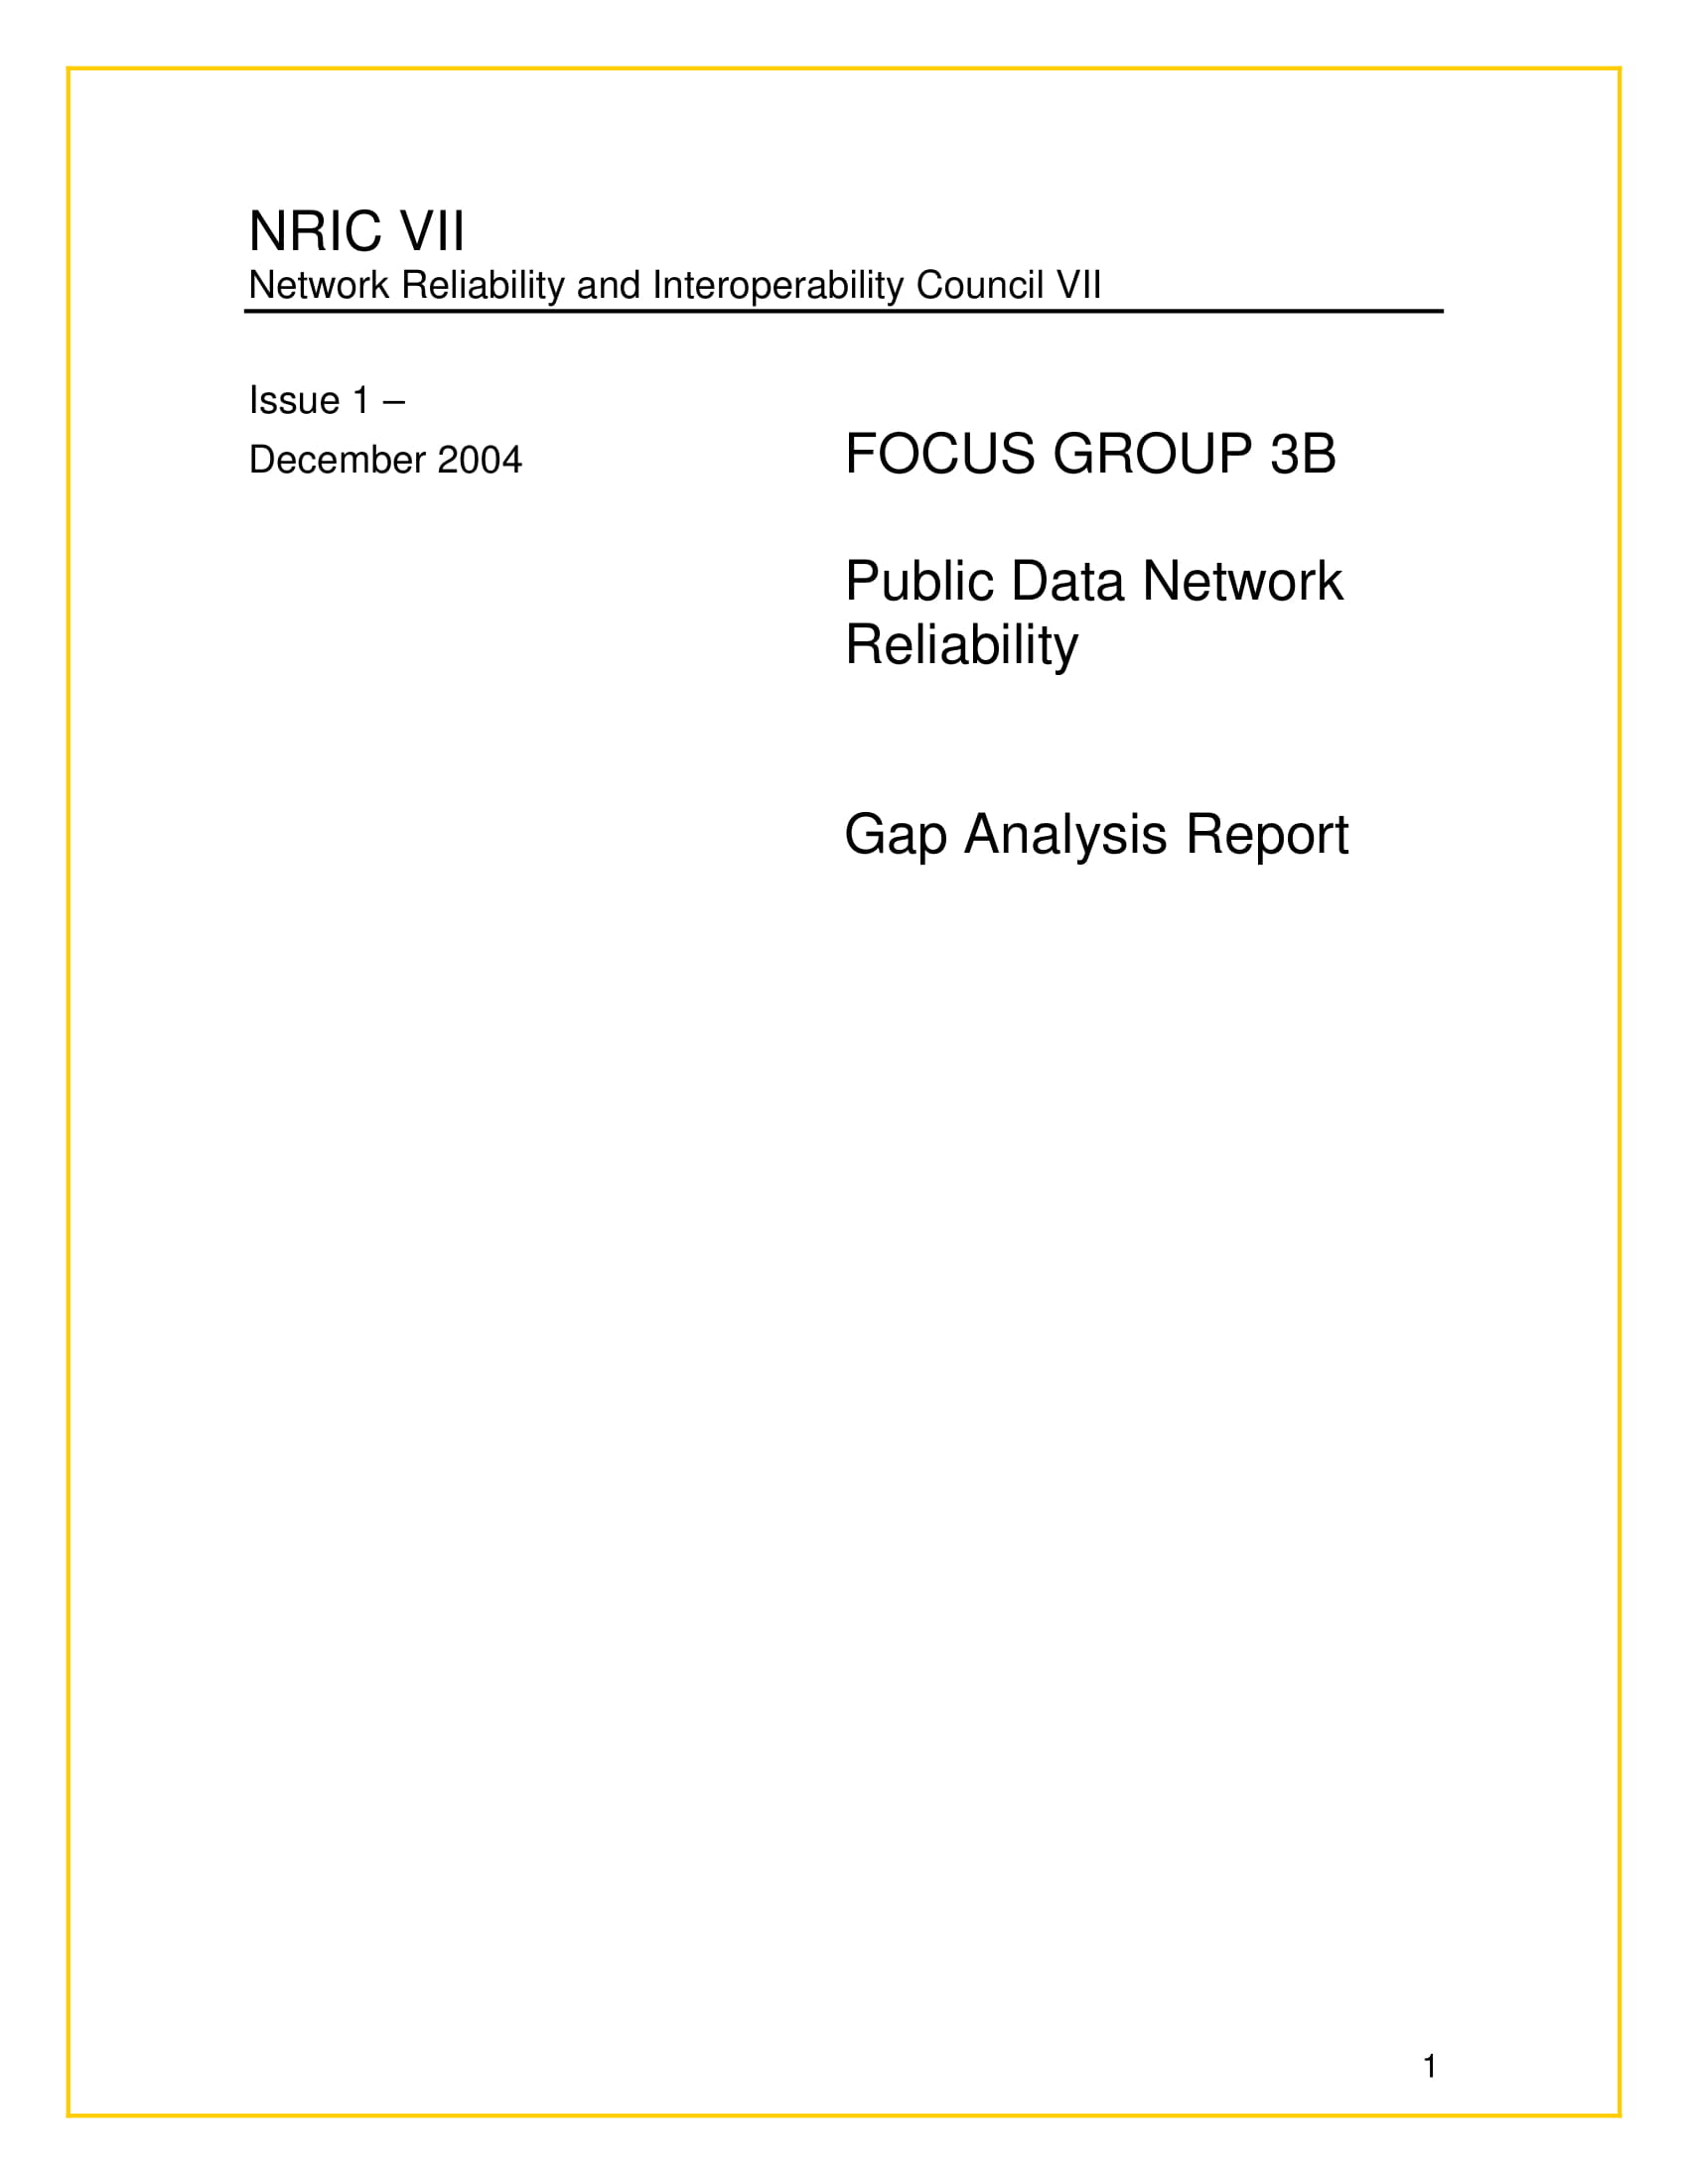 software network gap analysis example